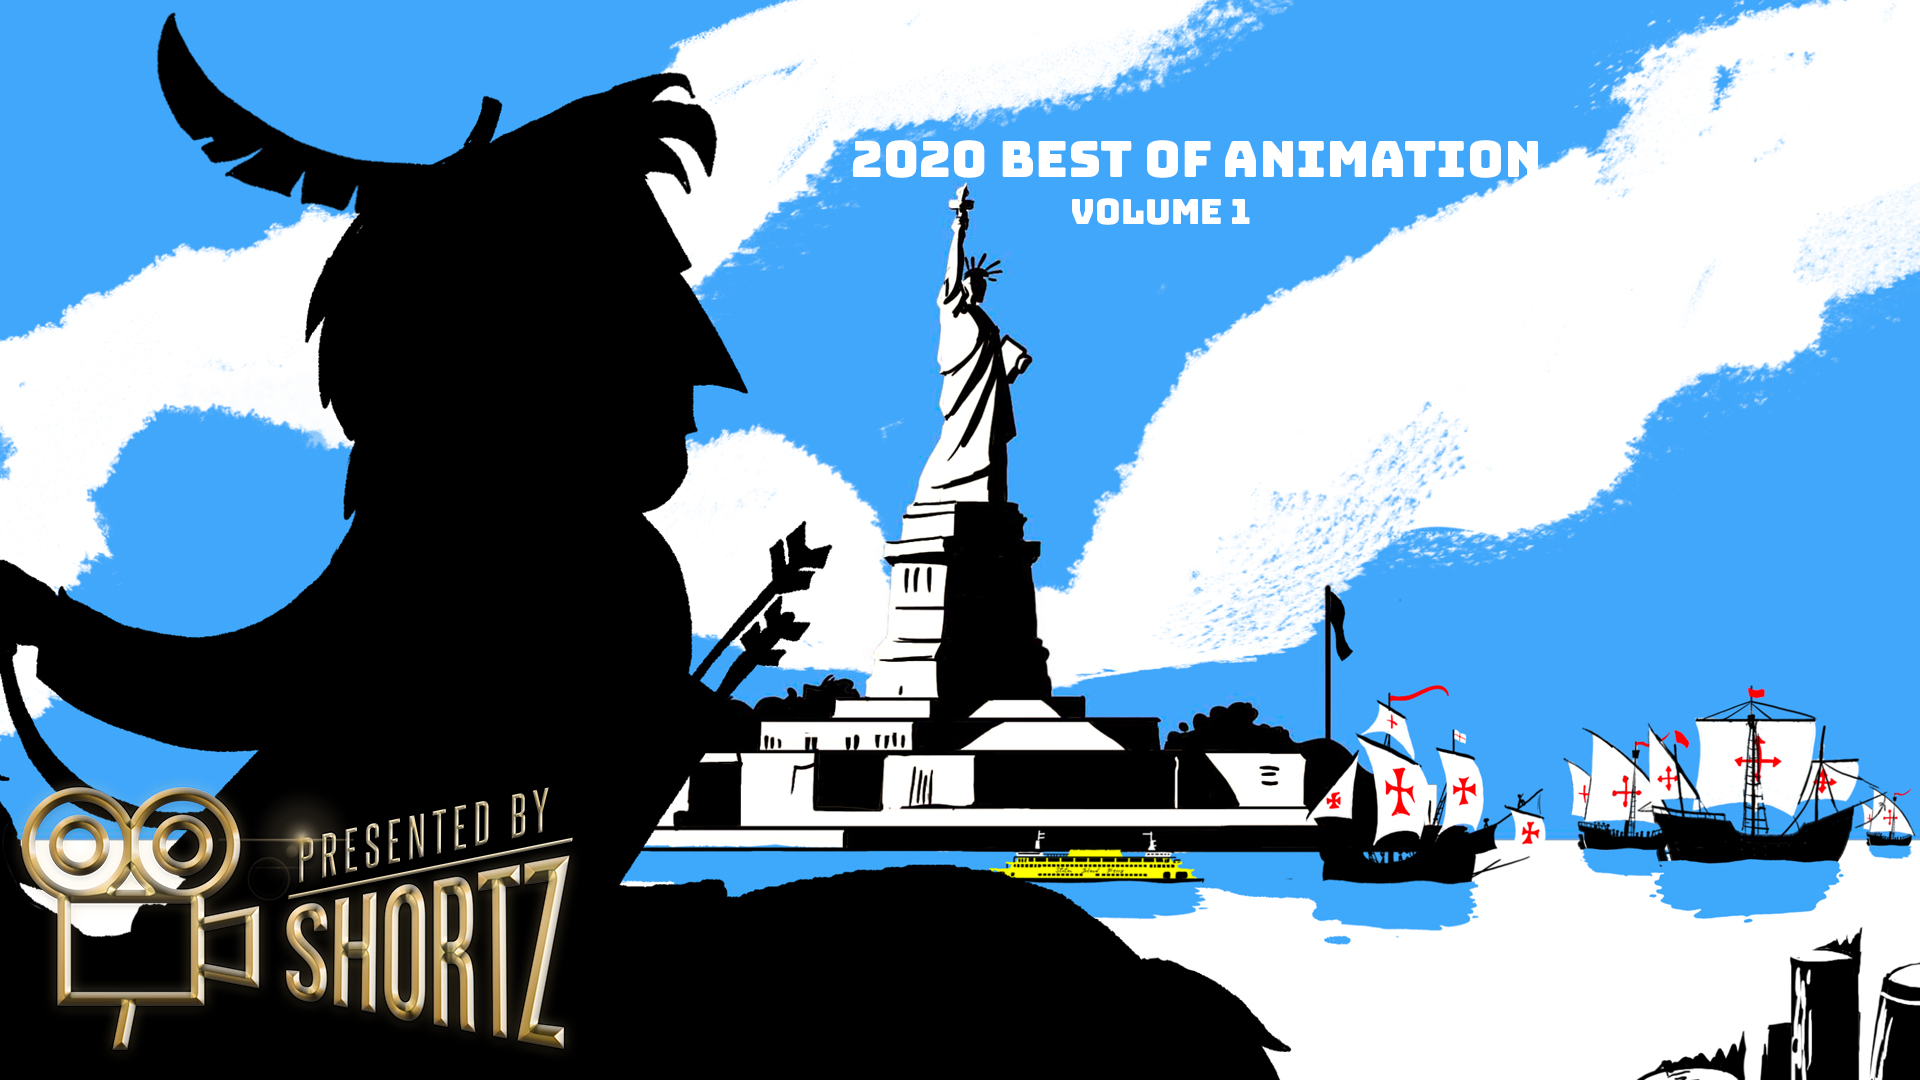 2020 Best of Animation - Presented by Shortz